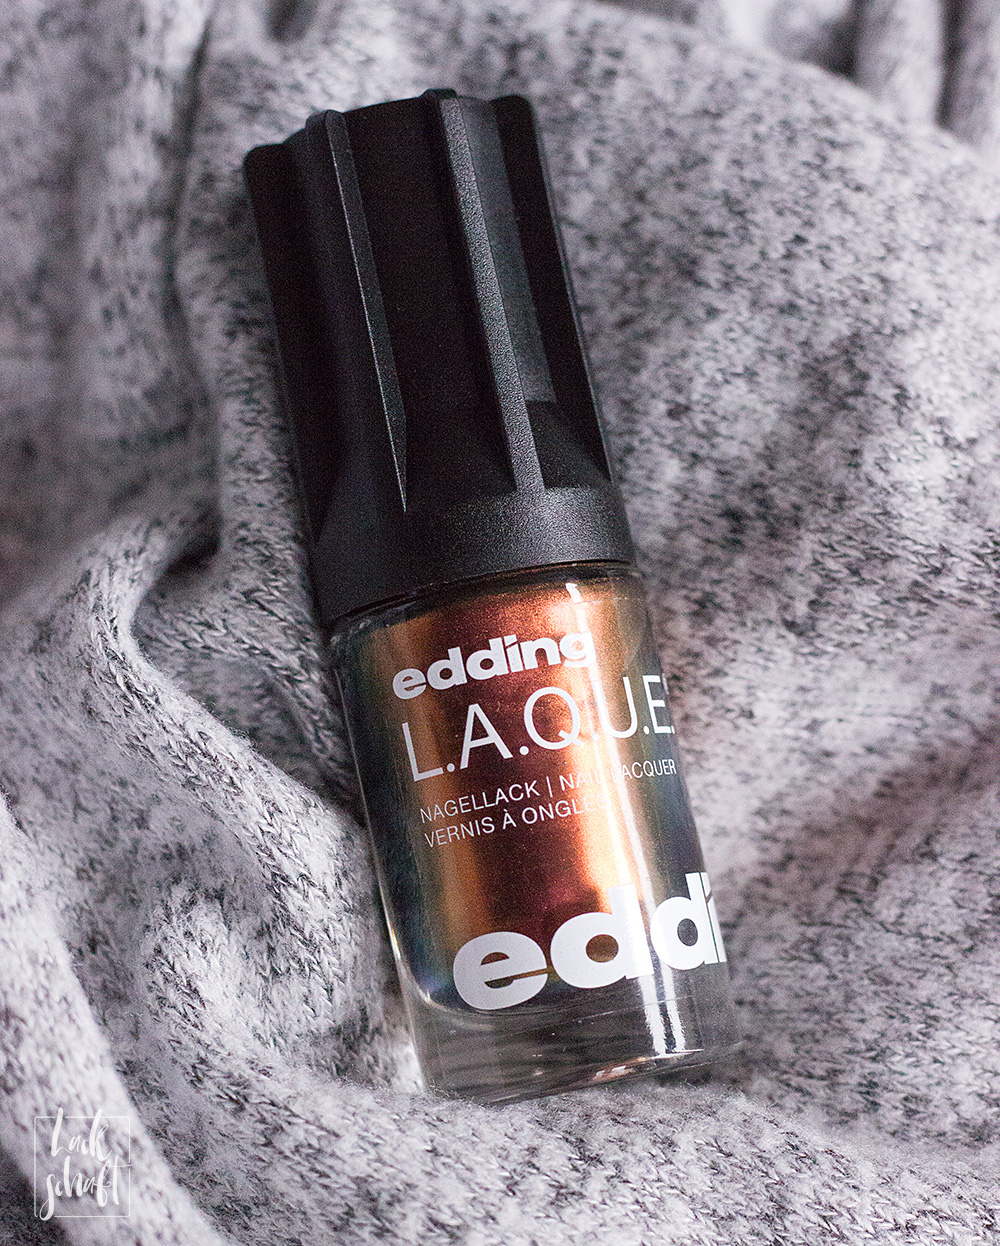 edding-lacque-magnetic-mars-duochrome-nagellack-swatch-4